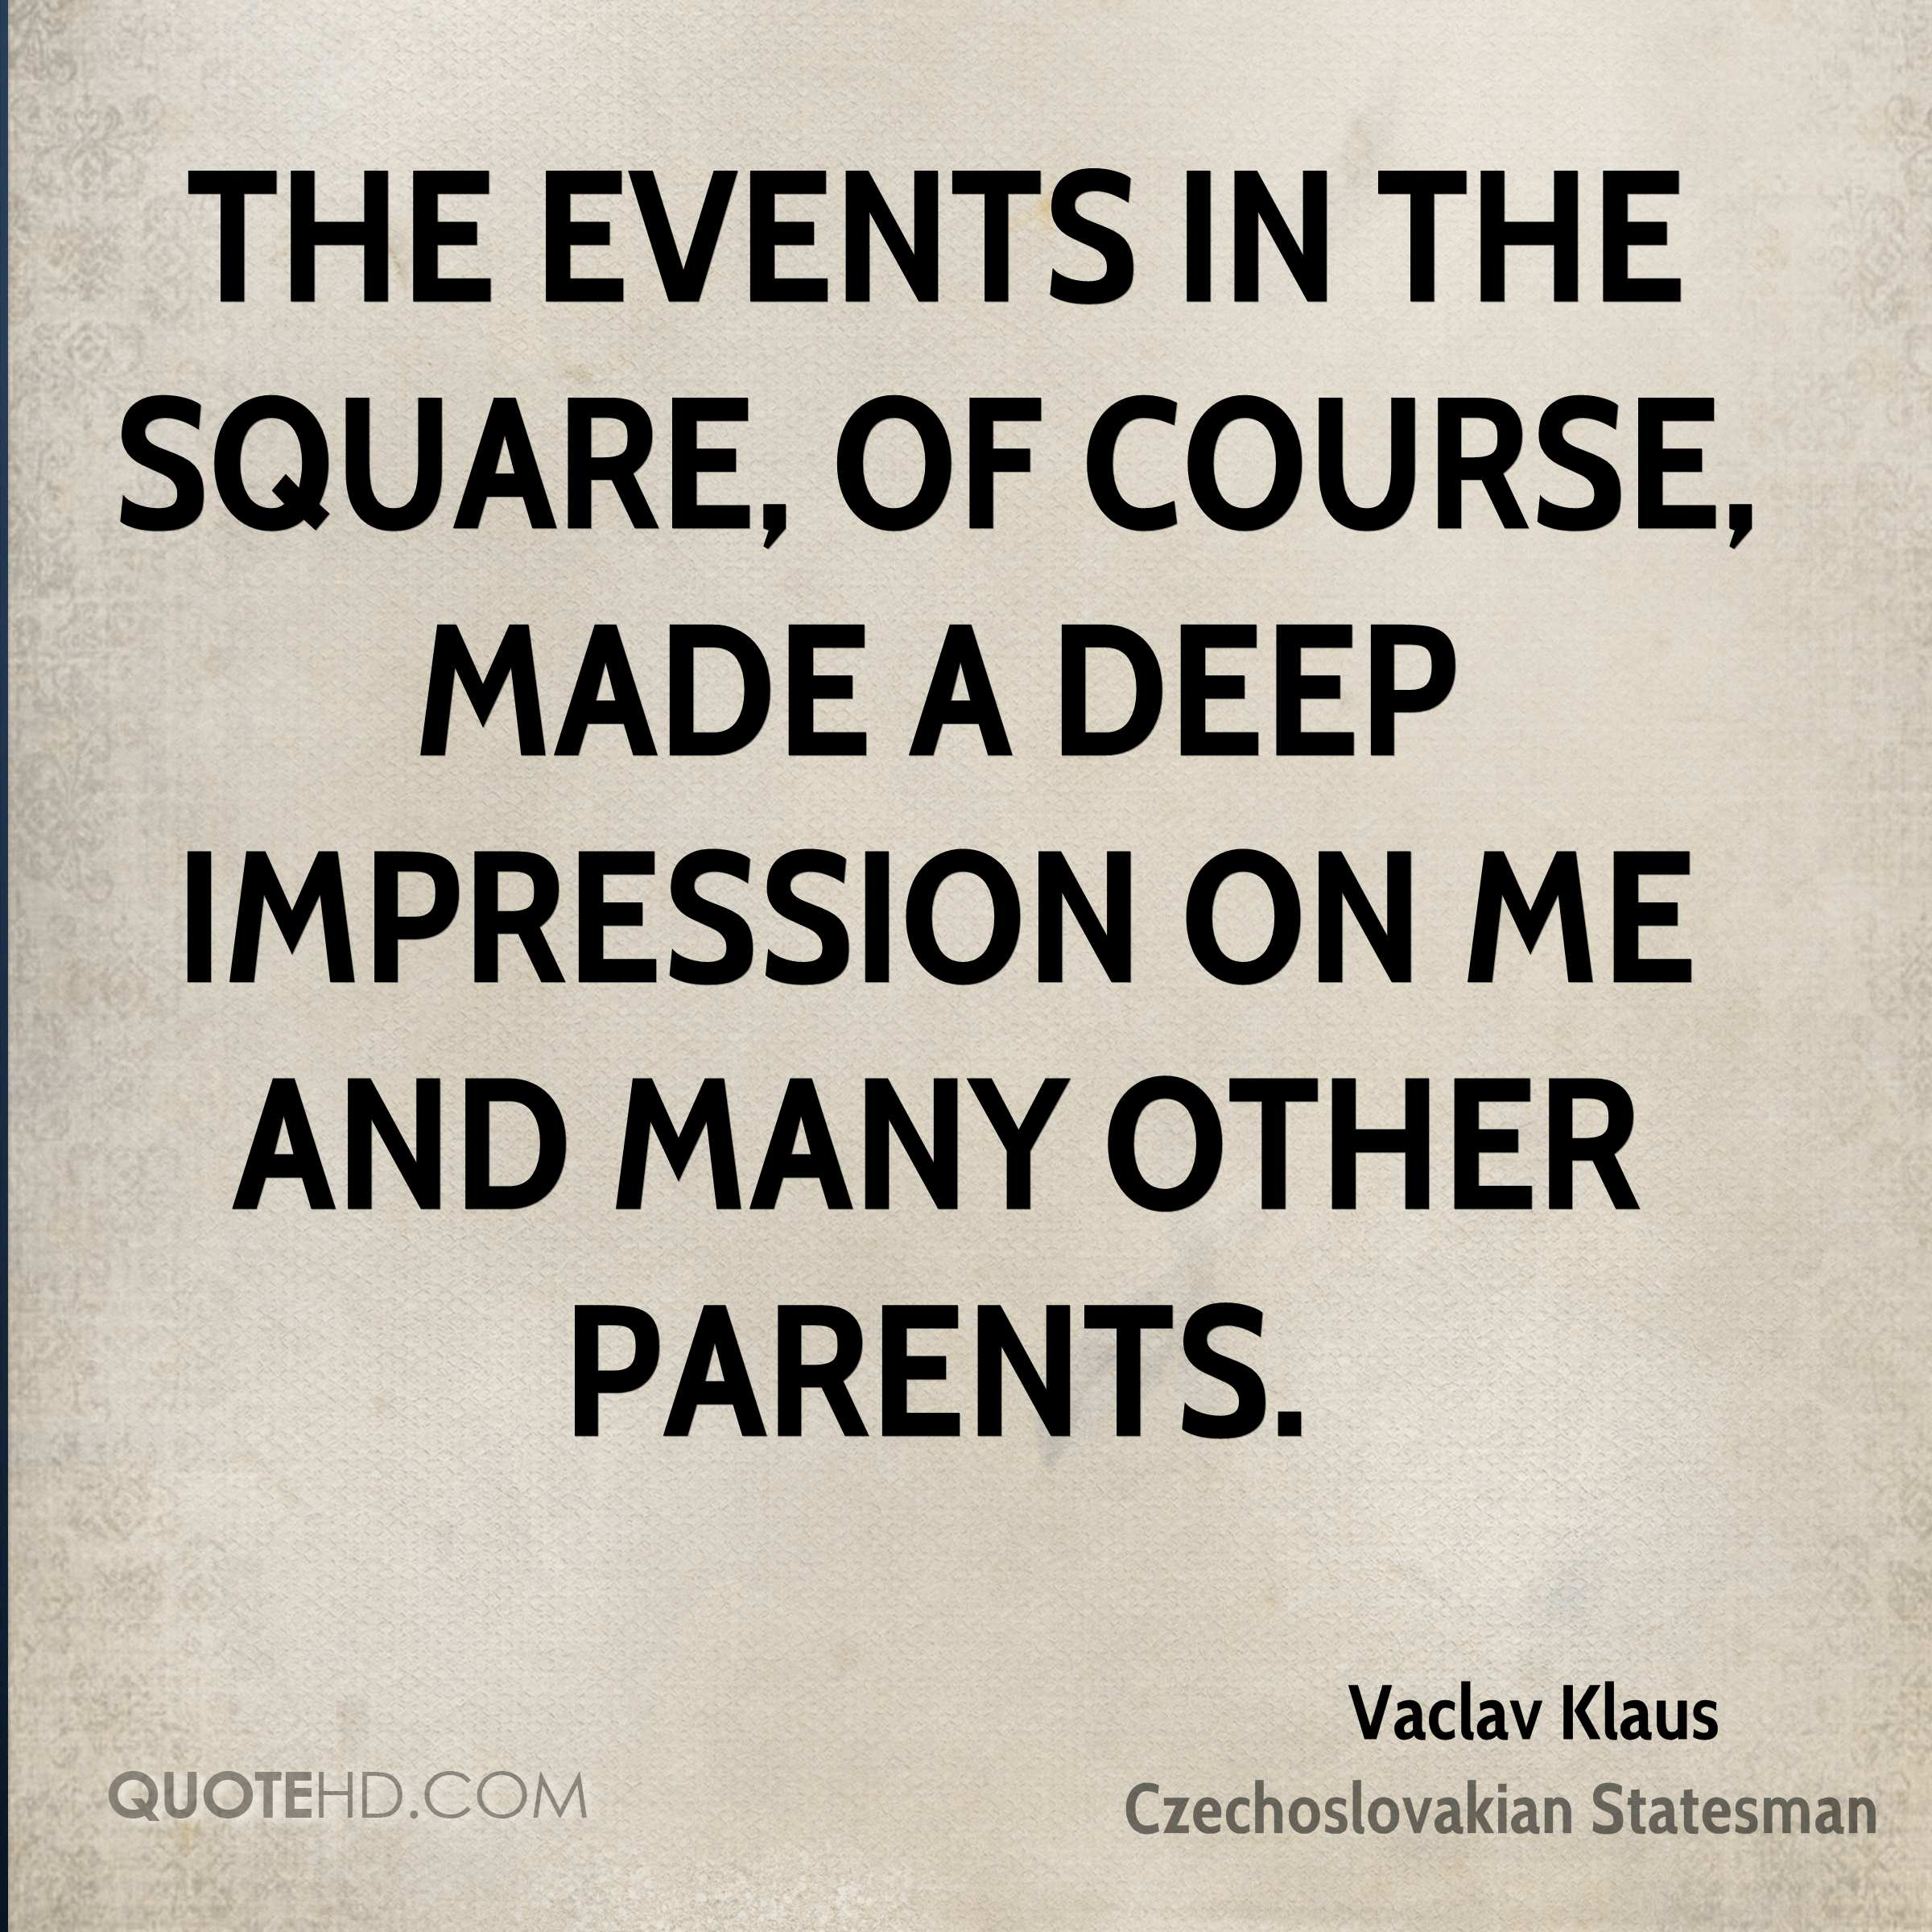 The events in the square, of course, made a deep impression on me and many other parents.